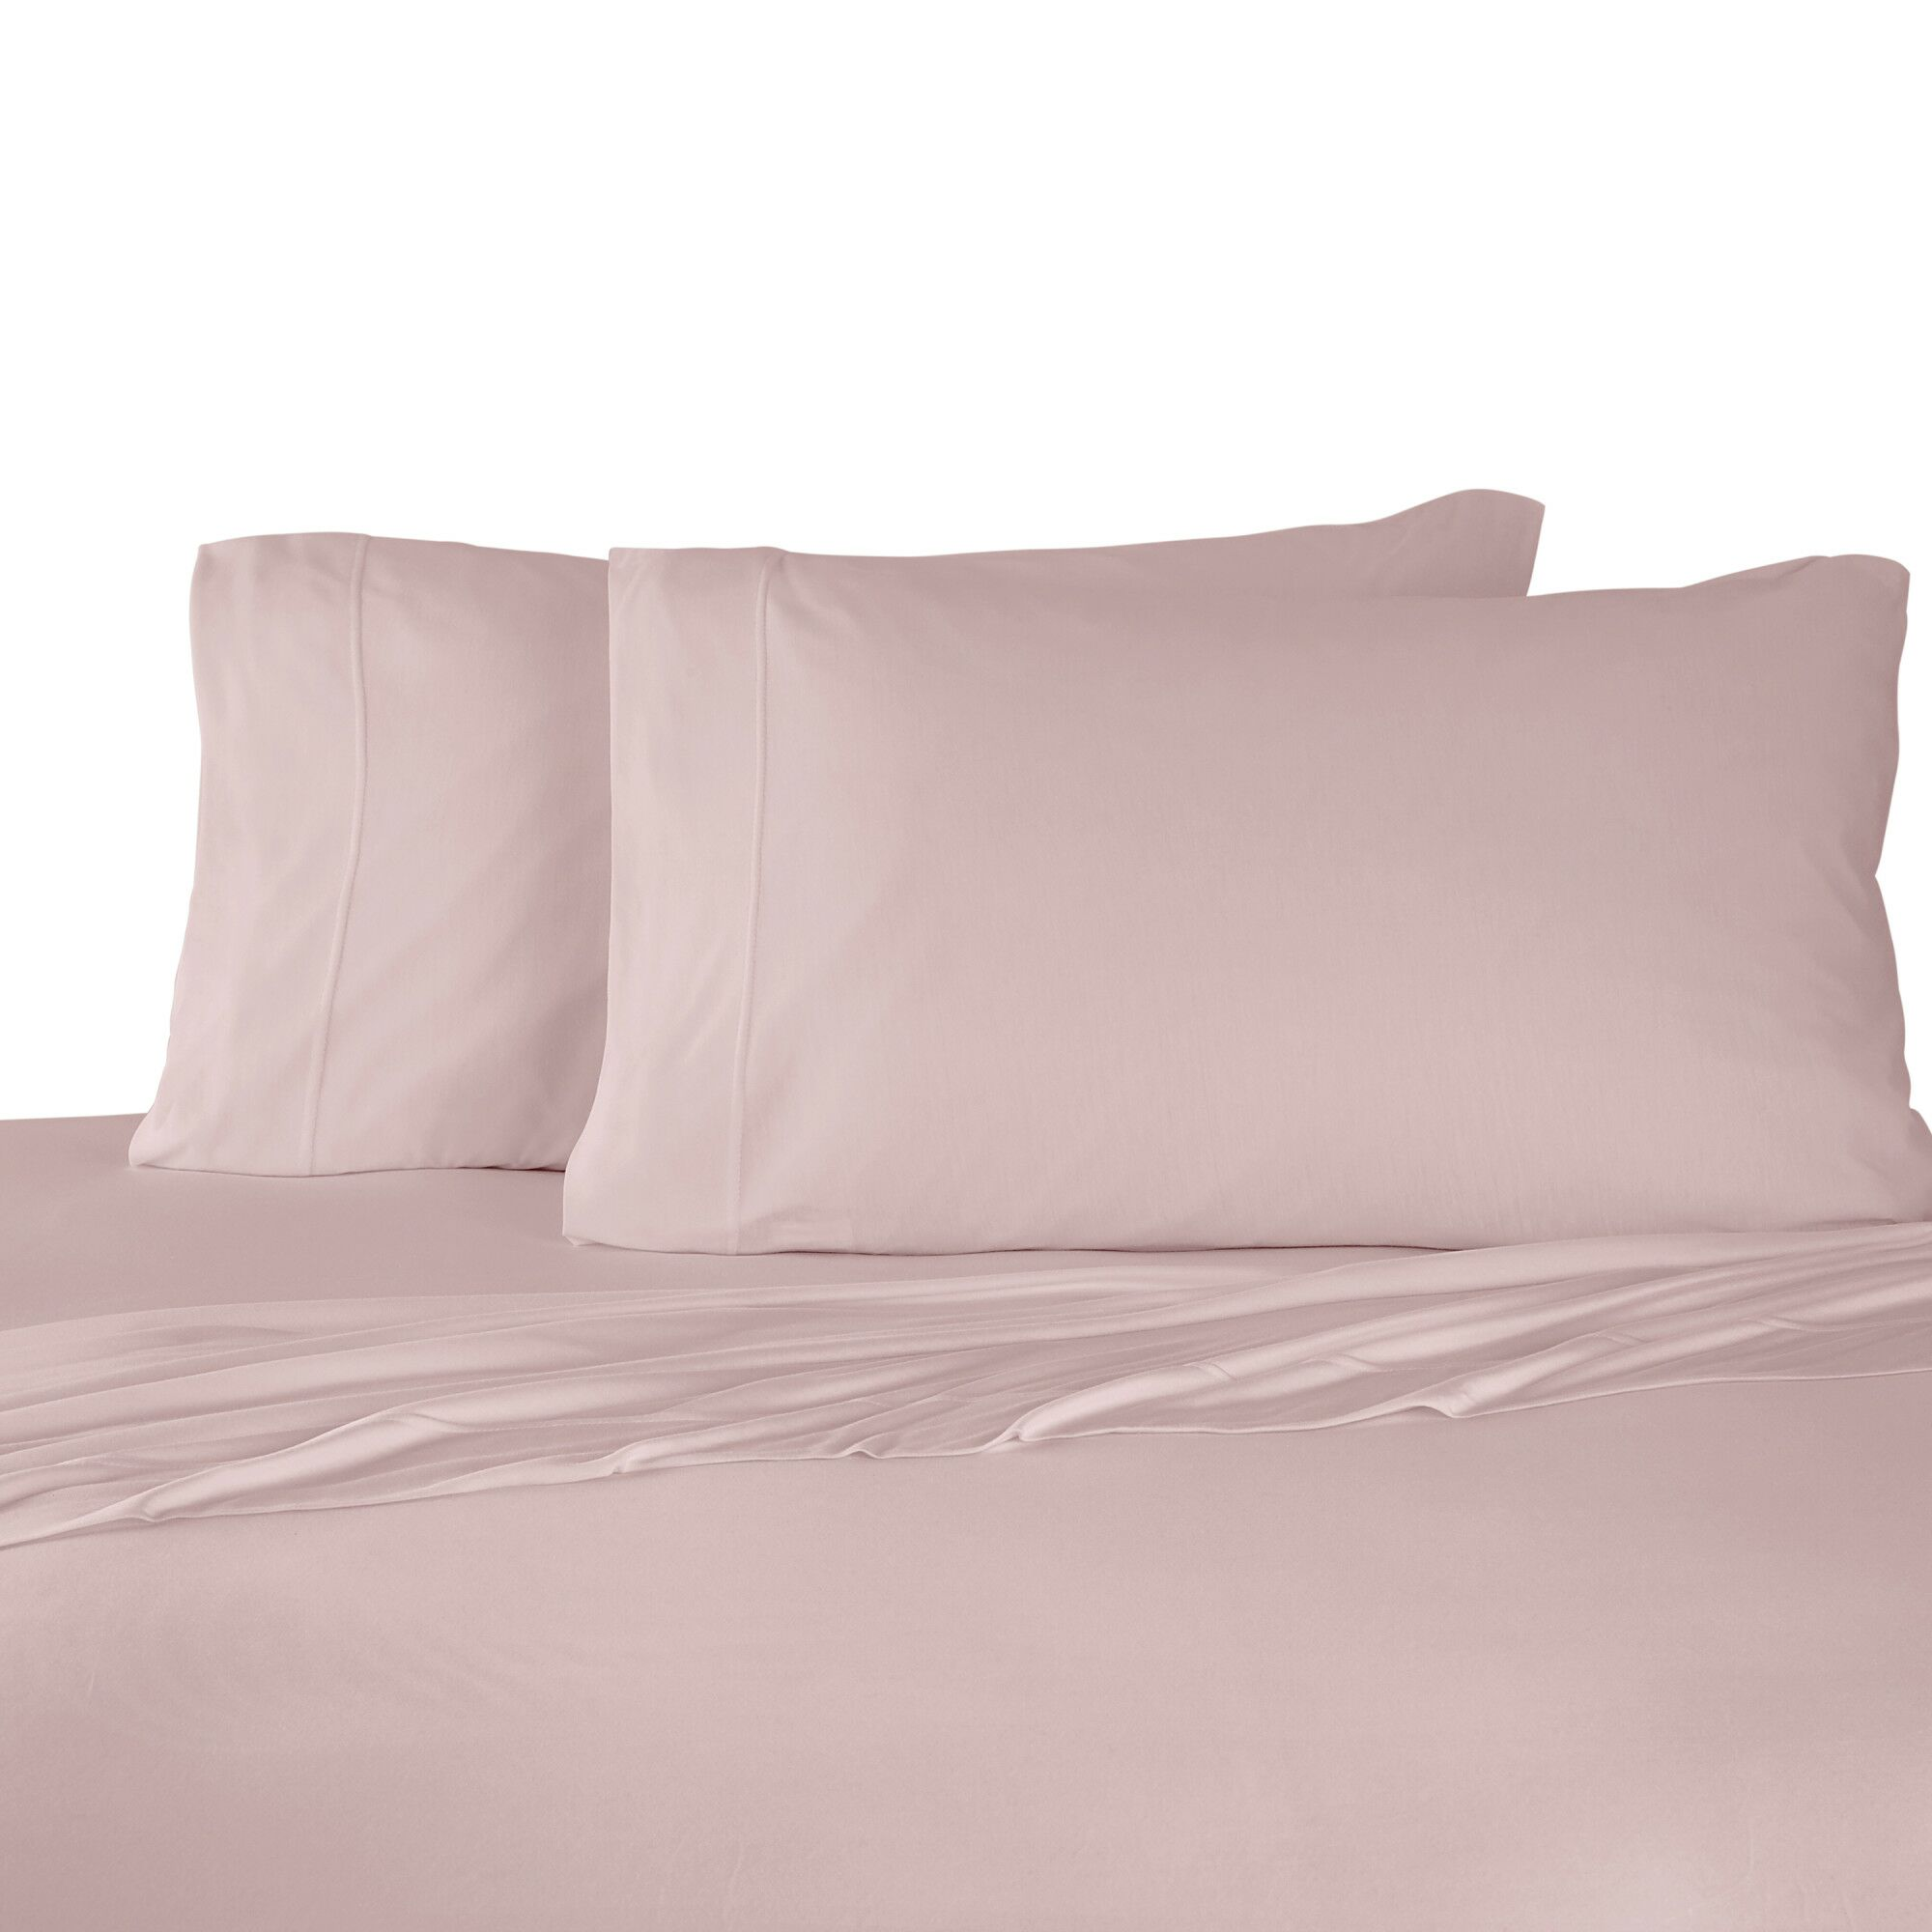 Bare Necessities Jersey Modal Cotton Sheet Set Color: Peach, Size: California king